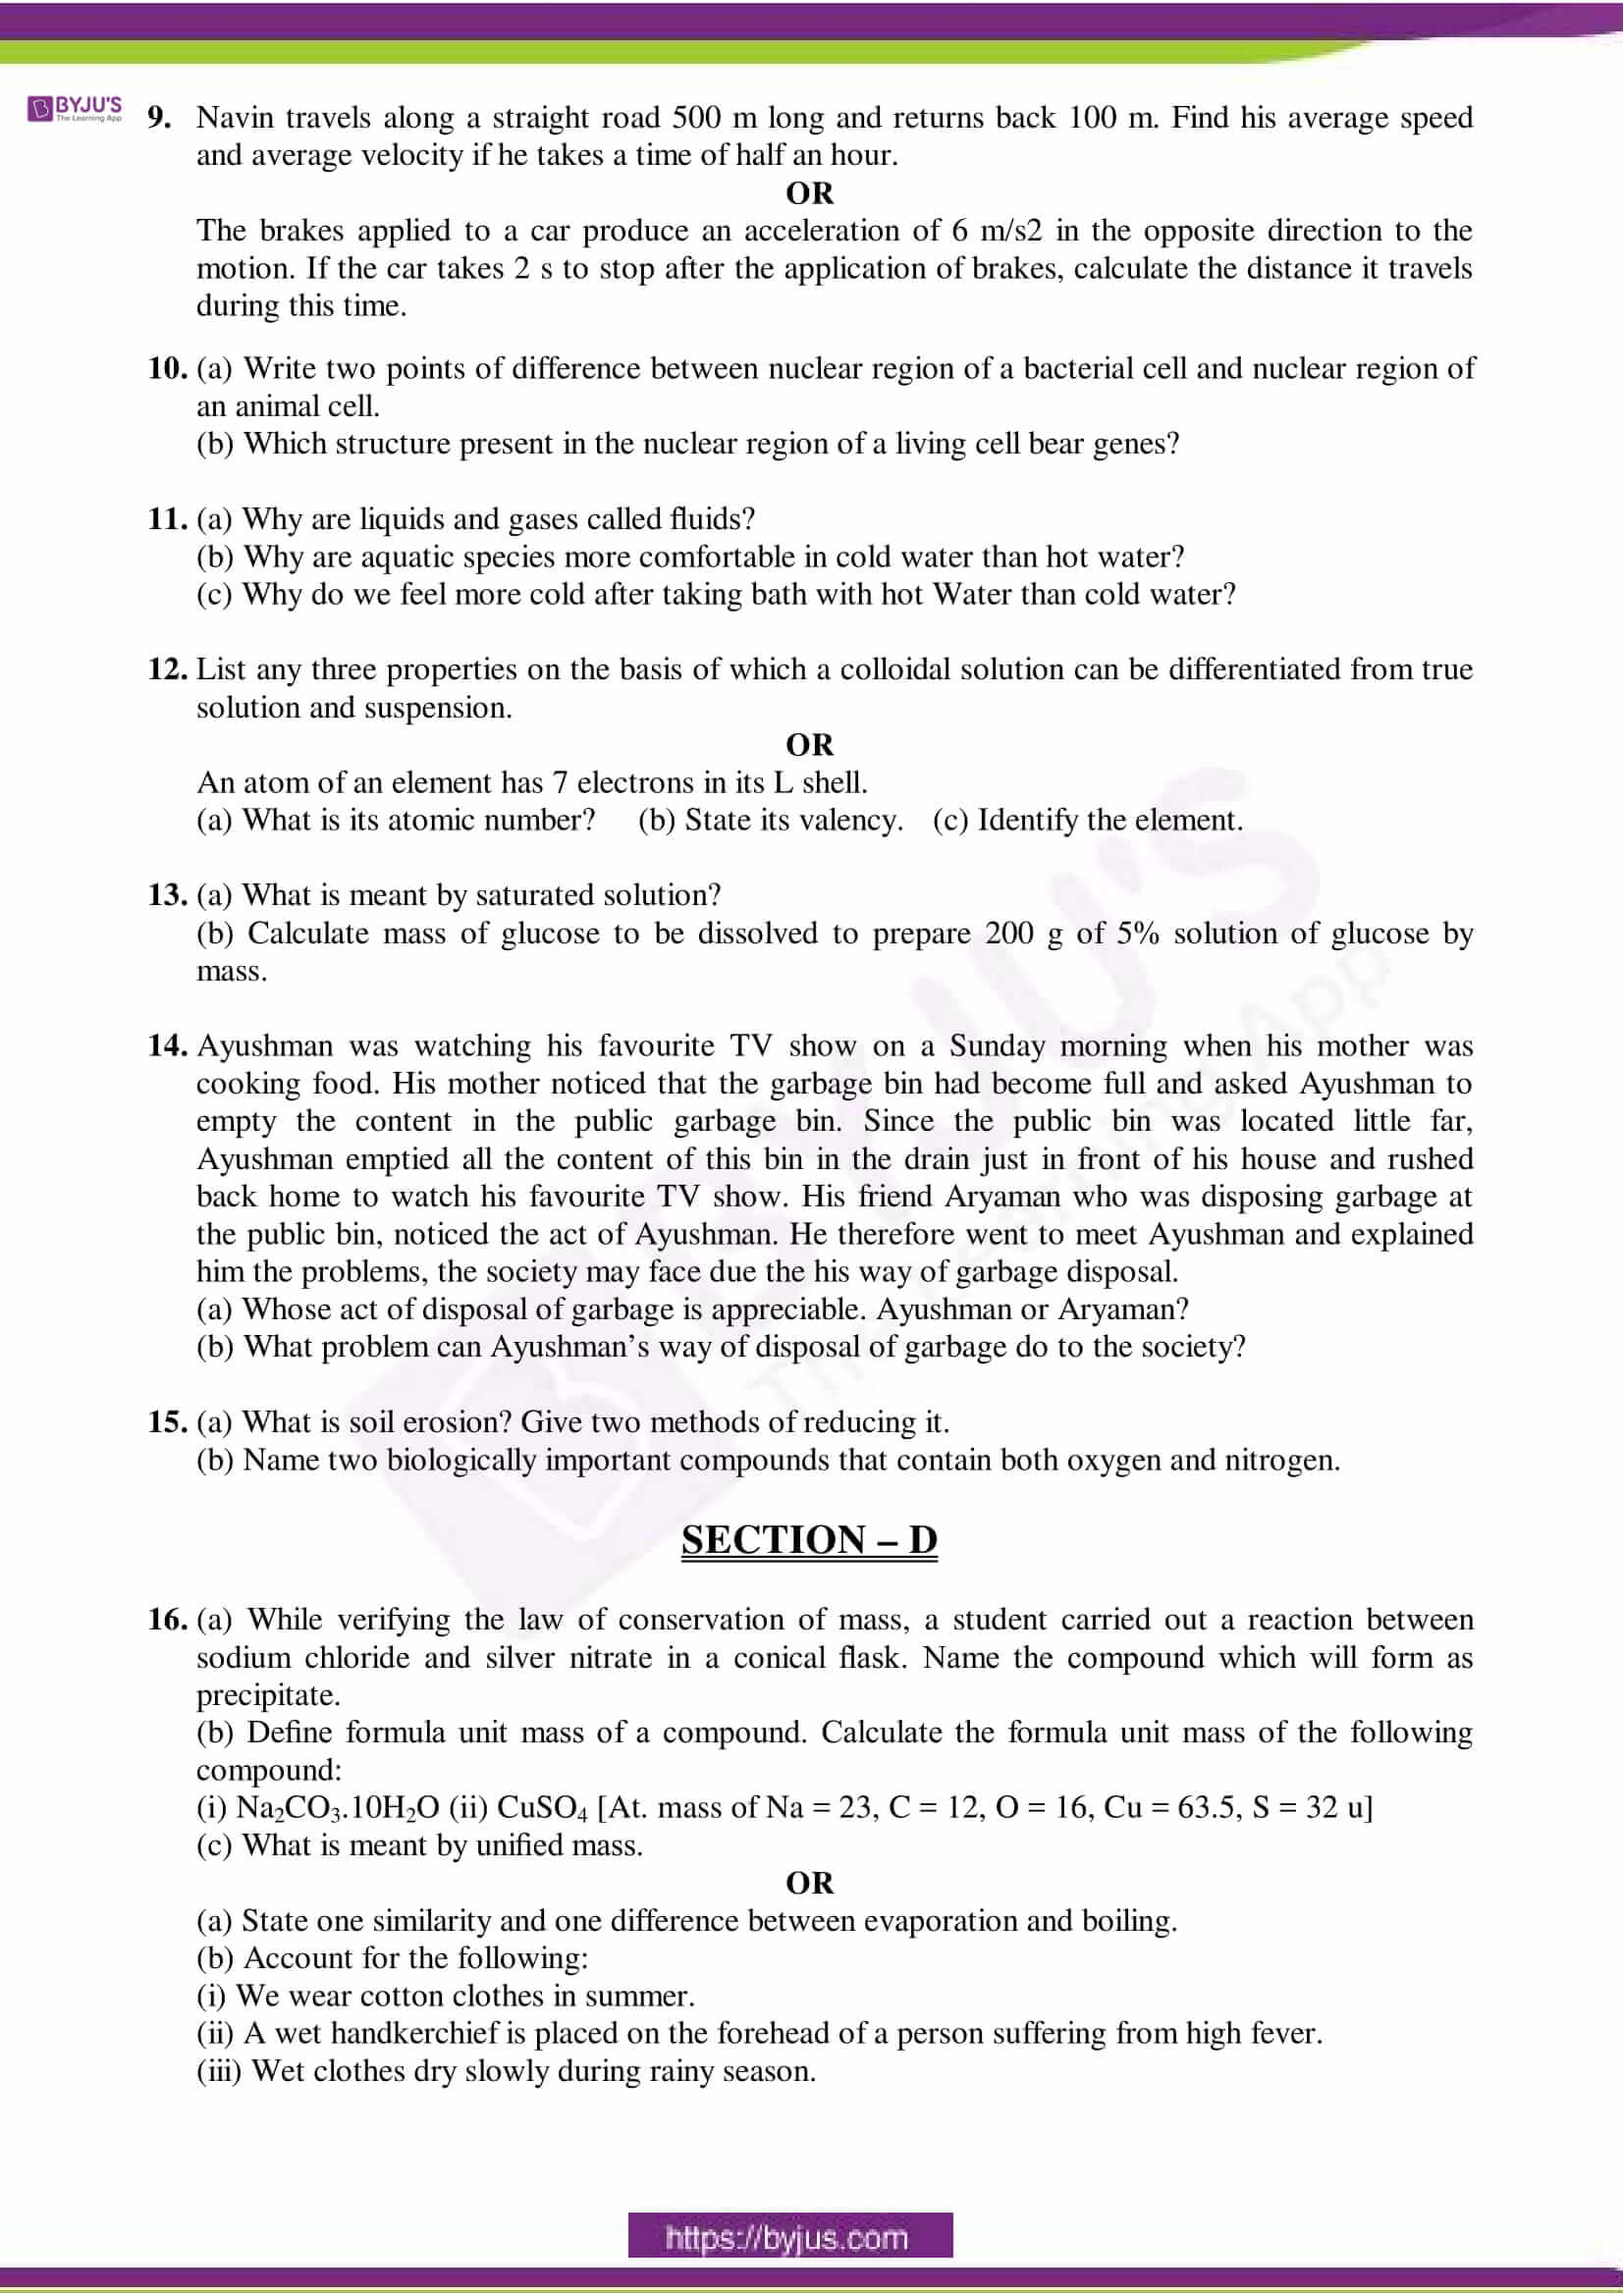 cbse sample paper class 9 science set 6